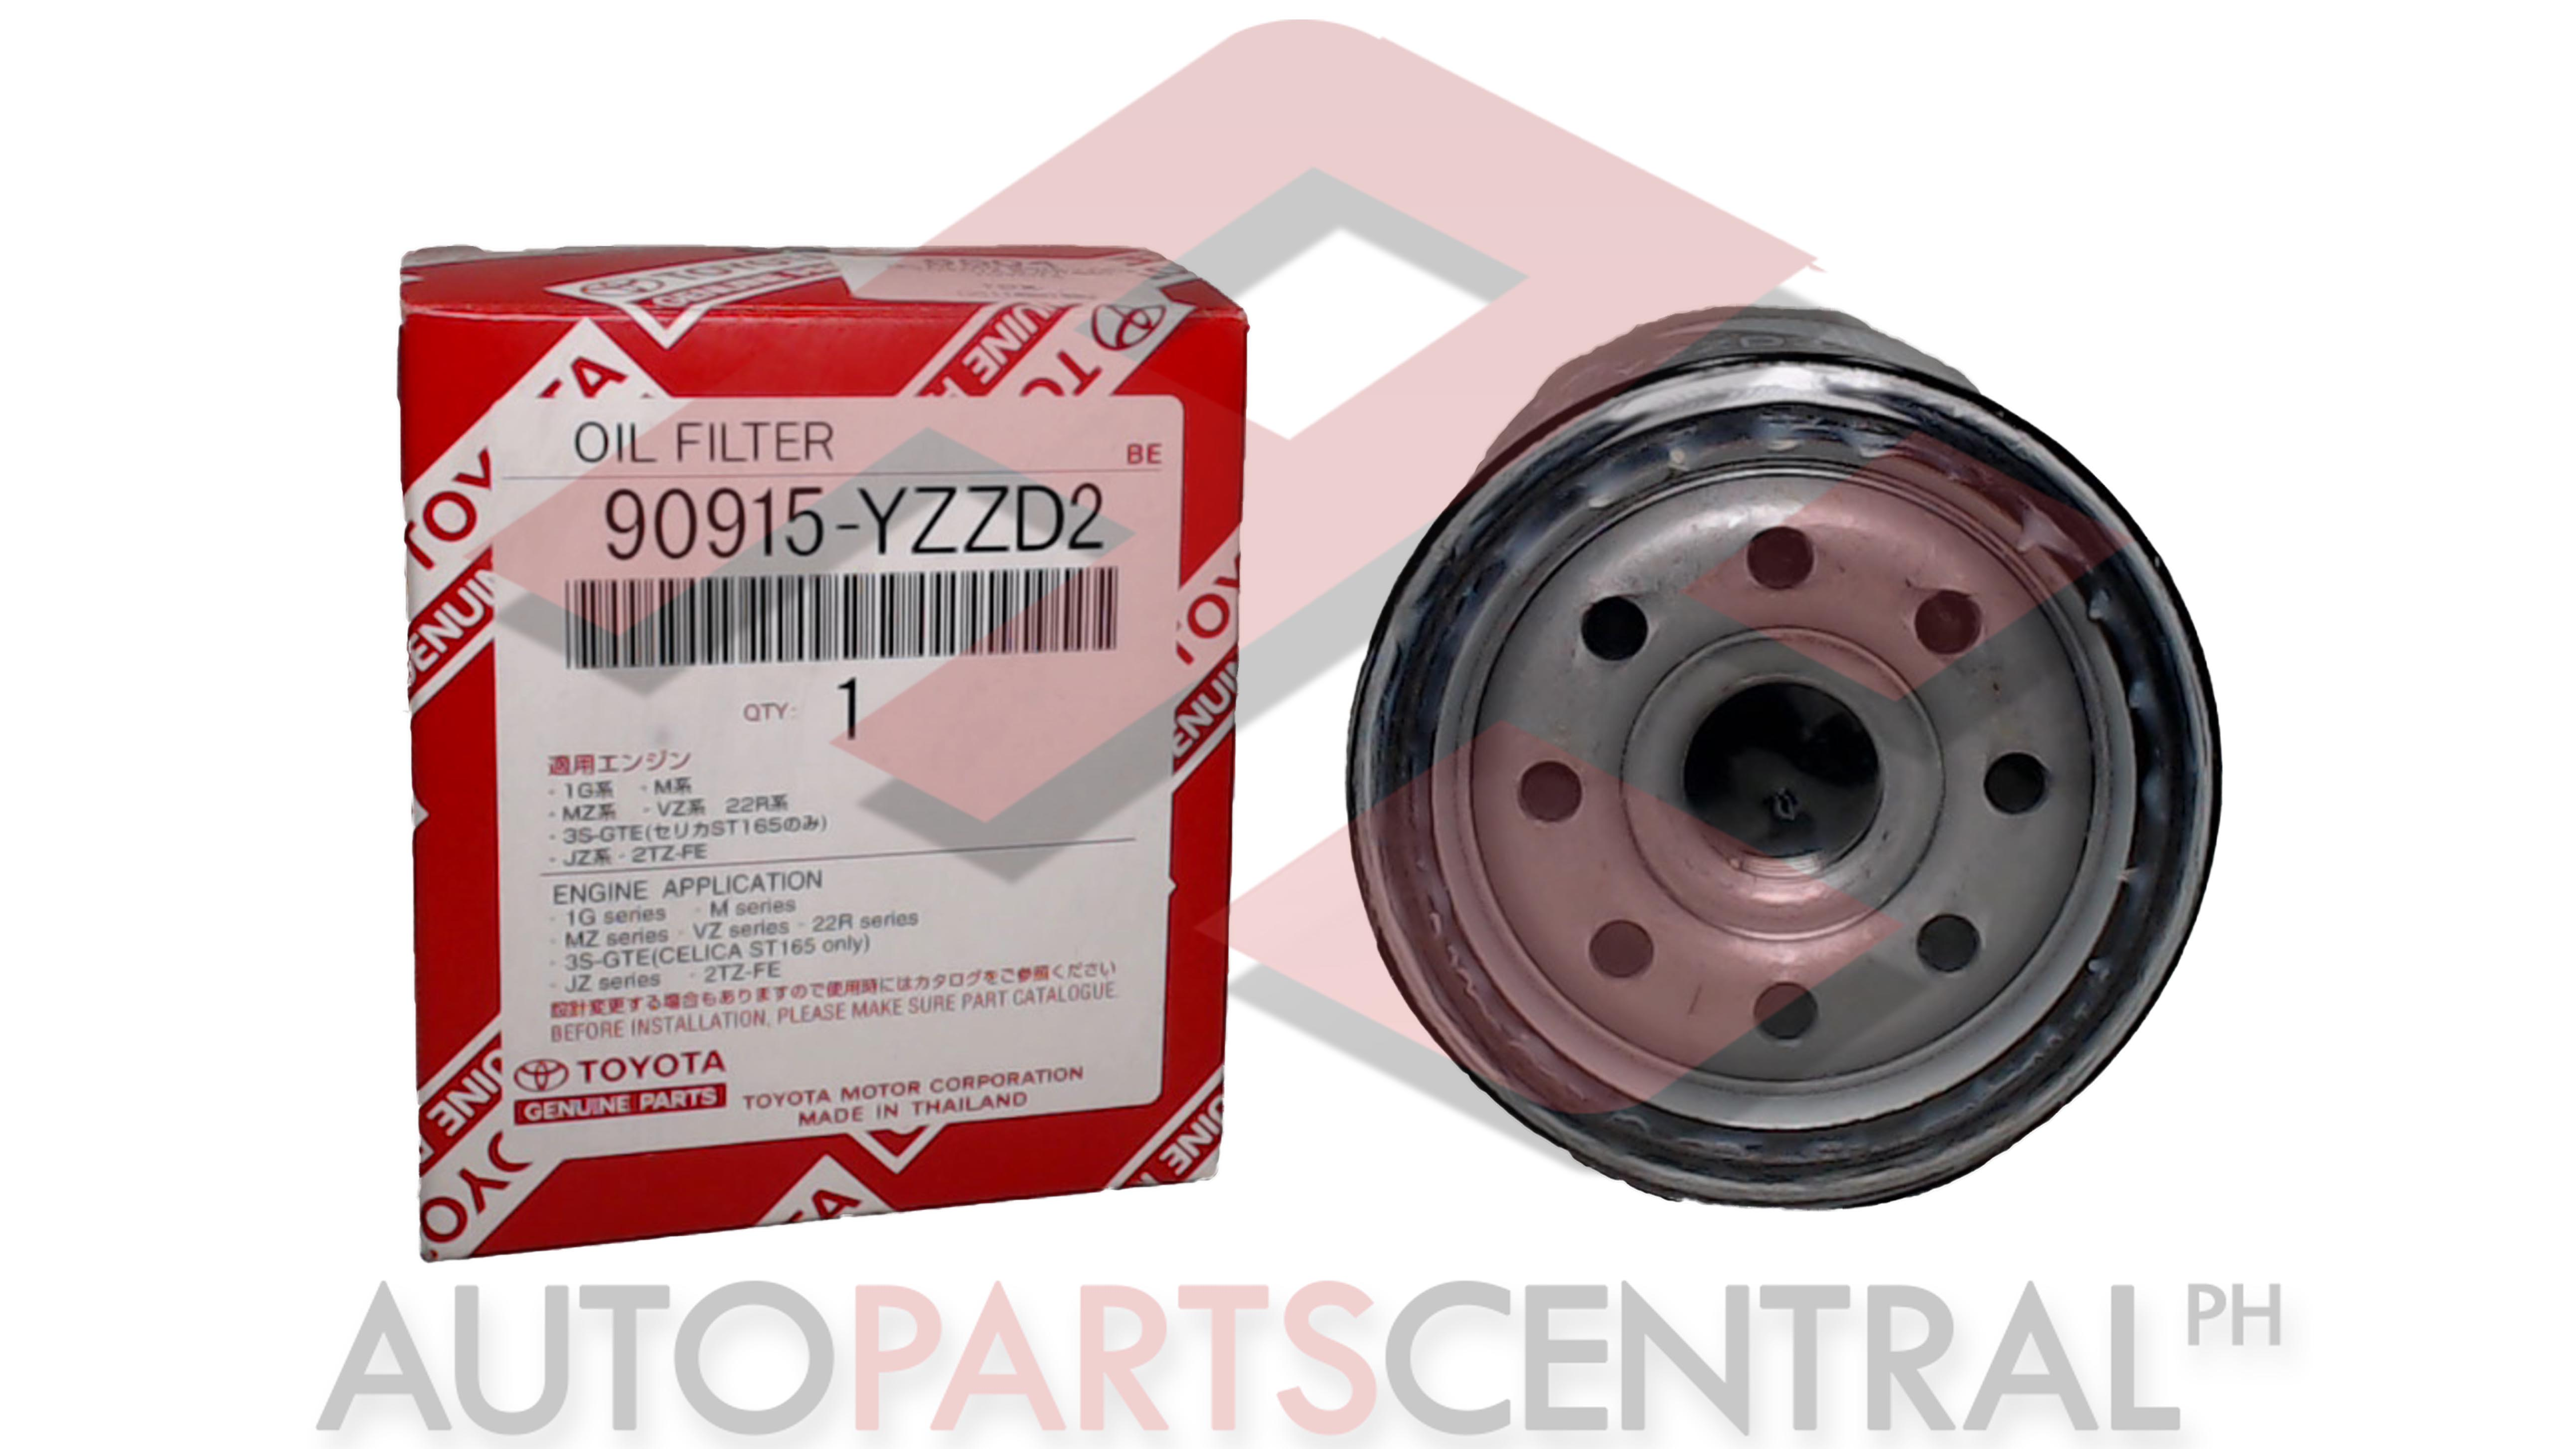 filter customer helpful product filters genuine toyota pcr replacement best rated automotive in oil image reviews parts